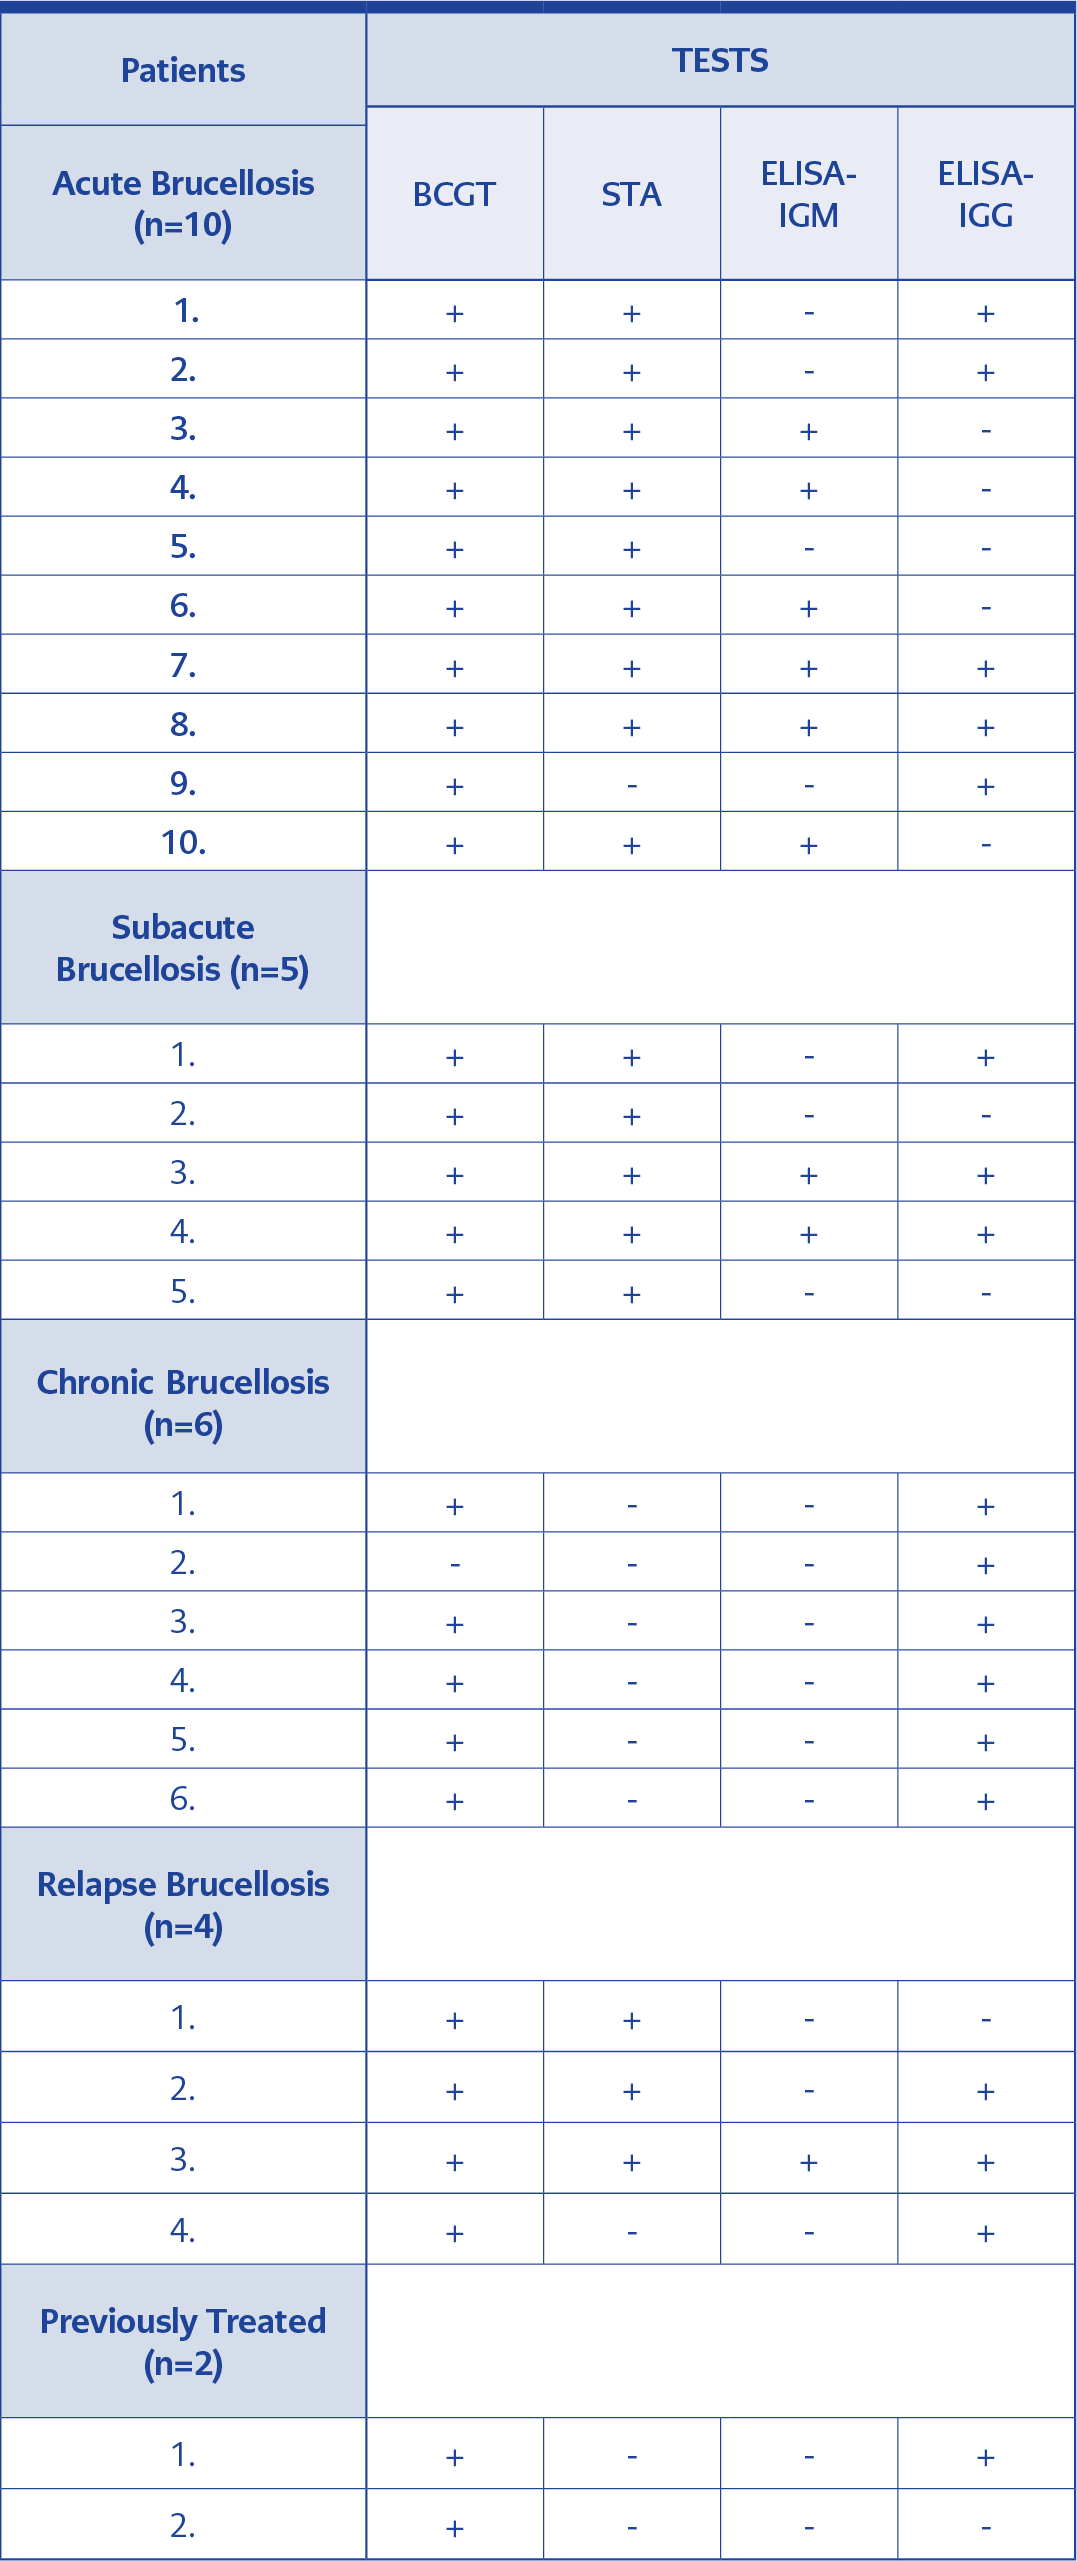 <strong>Table 1.</strong>Serological tests results according to the clinical profiles of the patients.